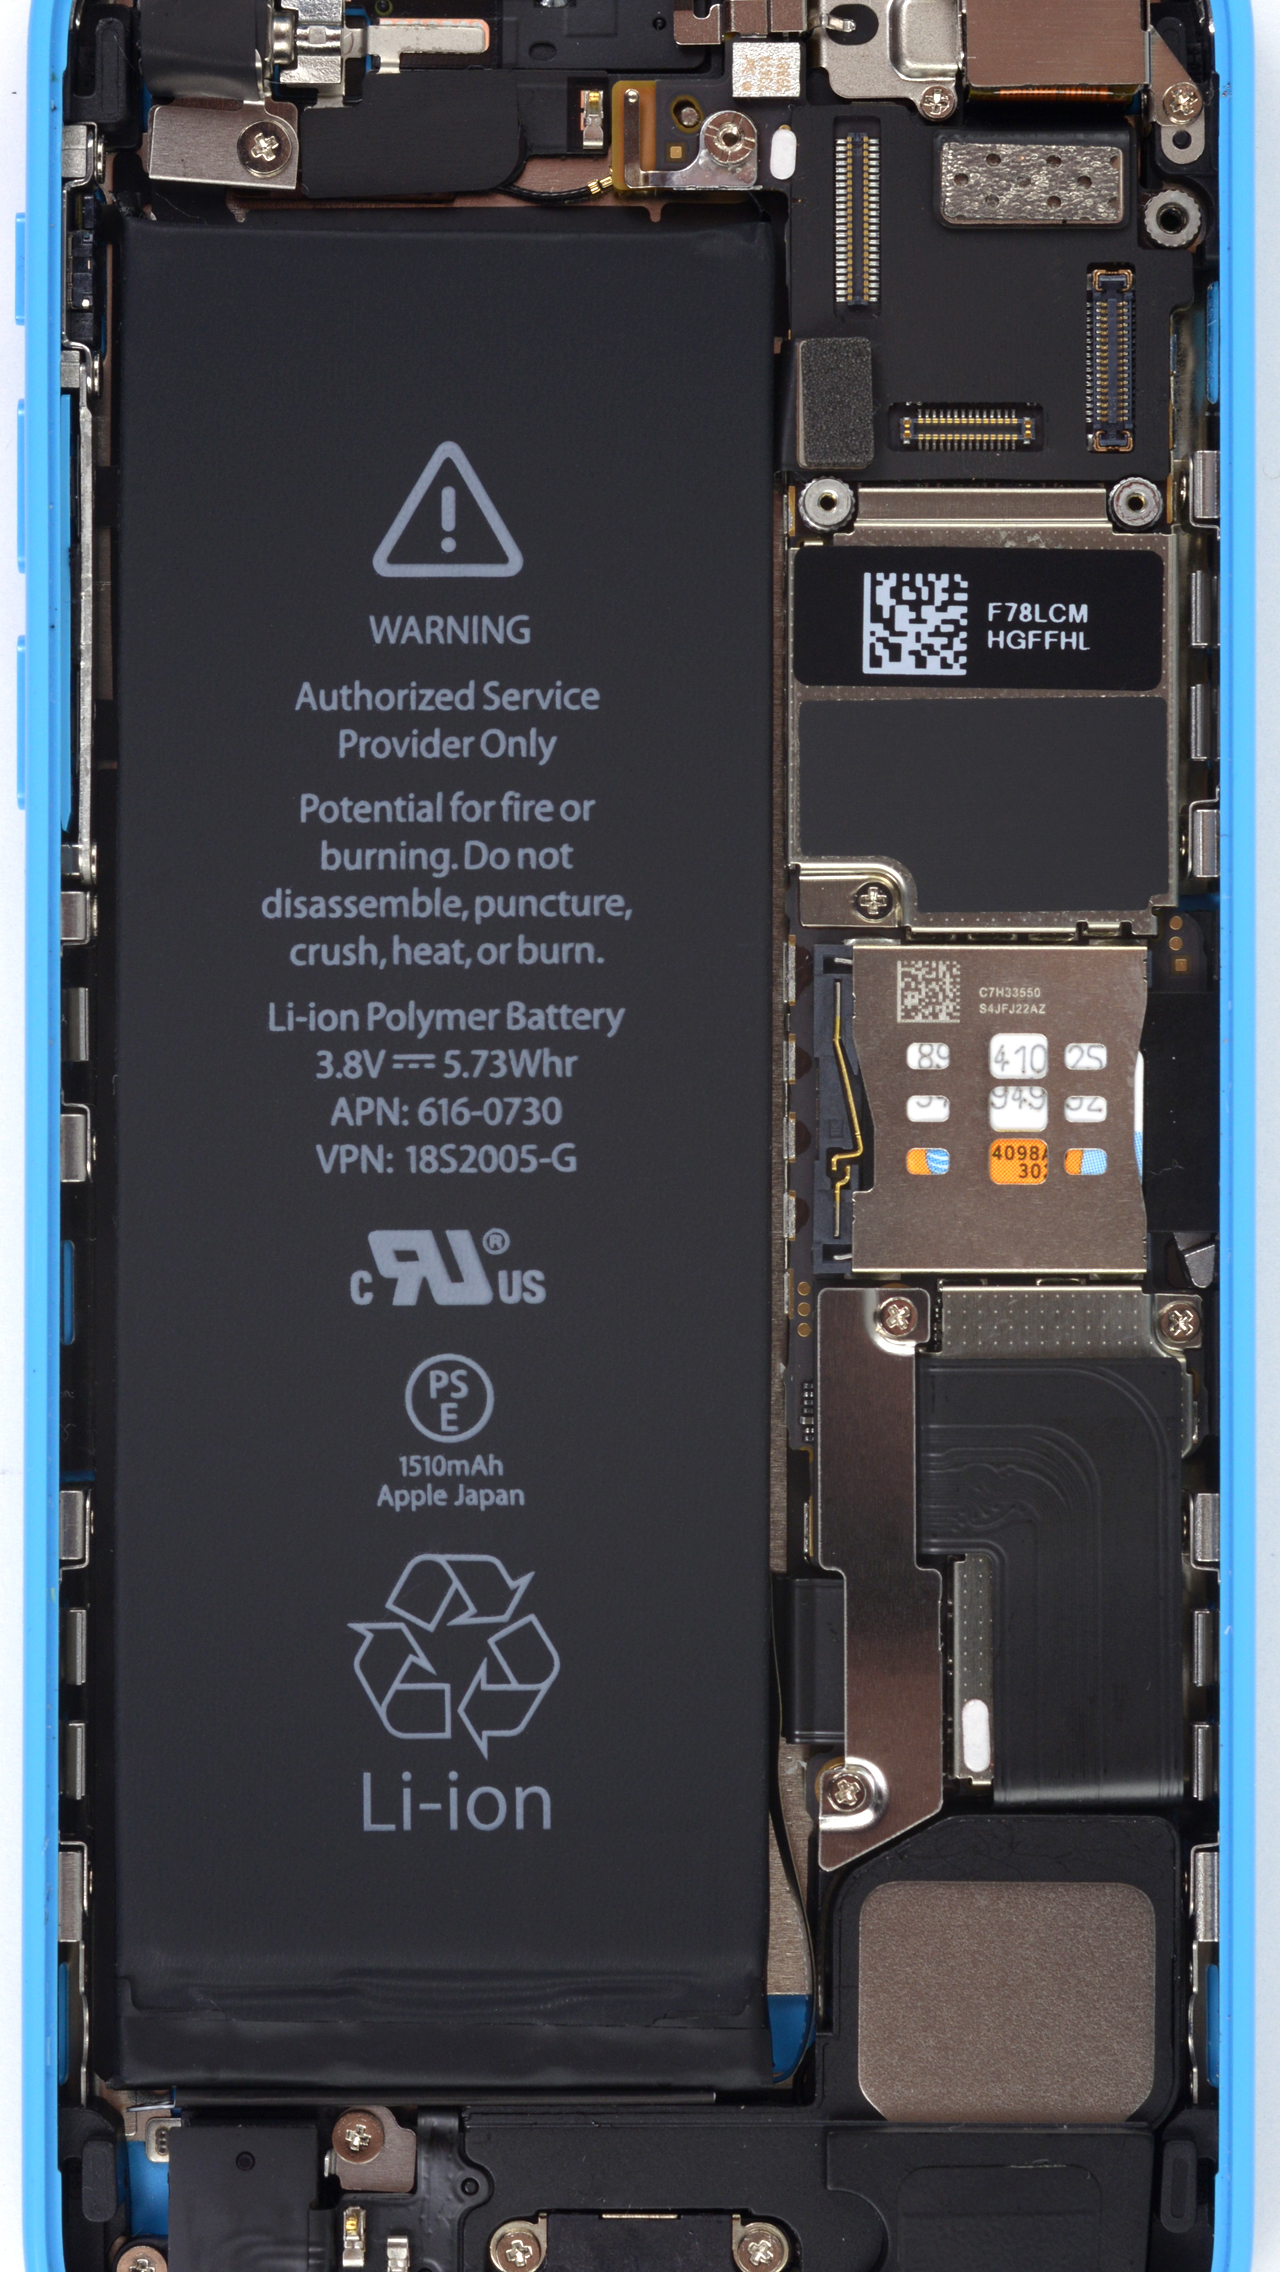 Ifixit Iphone X Wallpaper Iphone 5s C And Imac Internals Wallpapers Ifixit